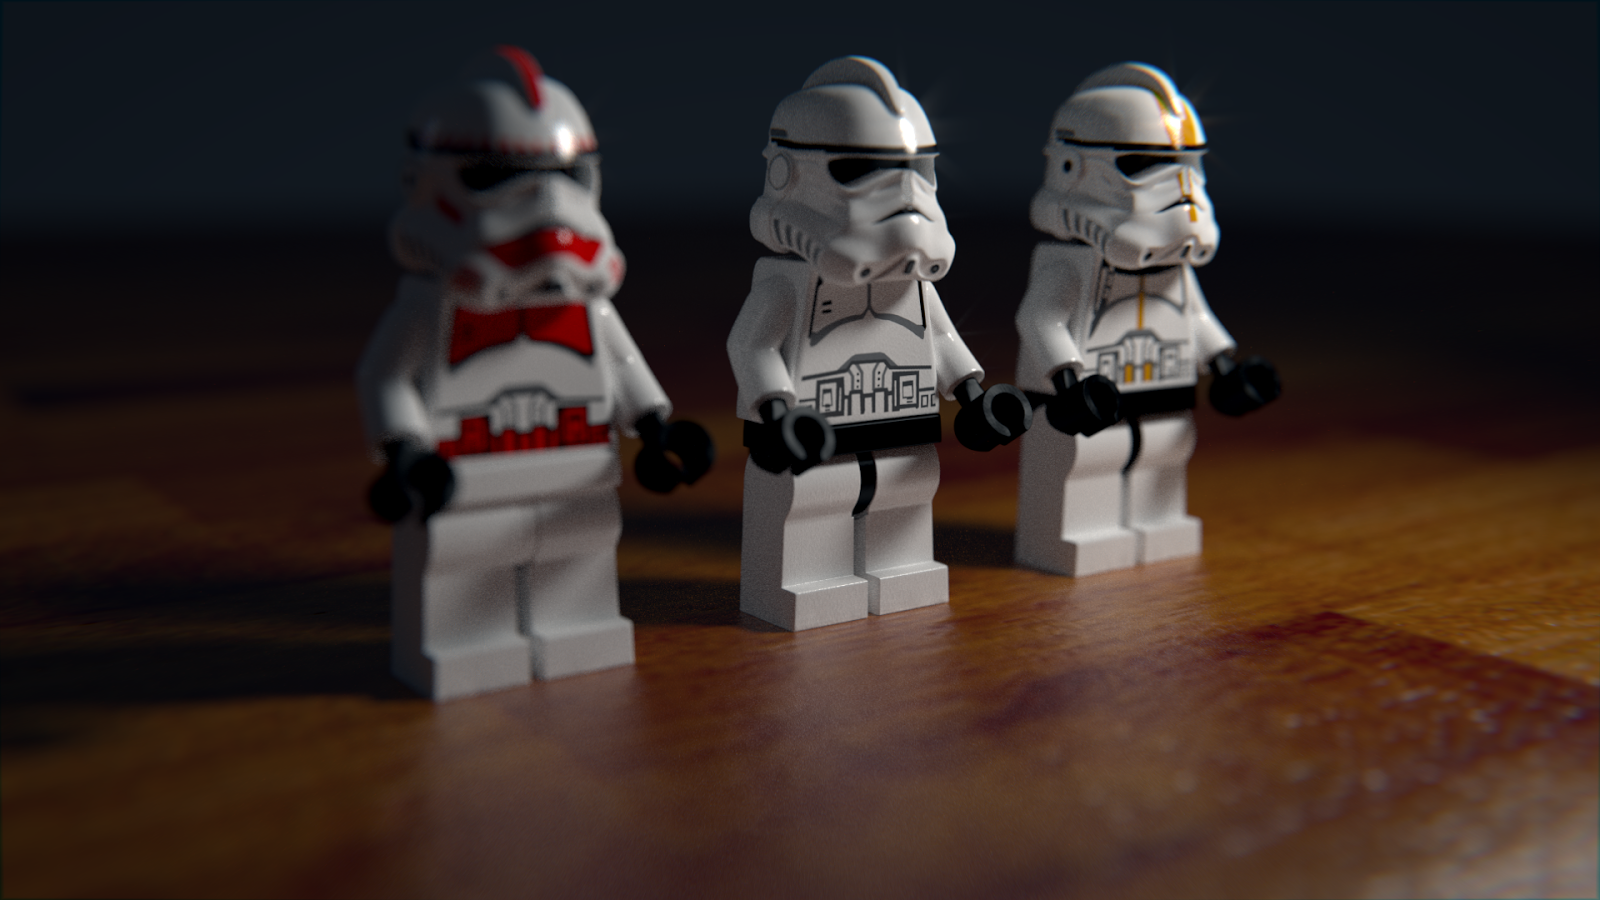 Lego minifigure Blender cycles render